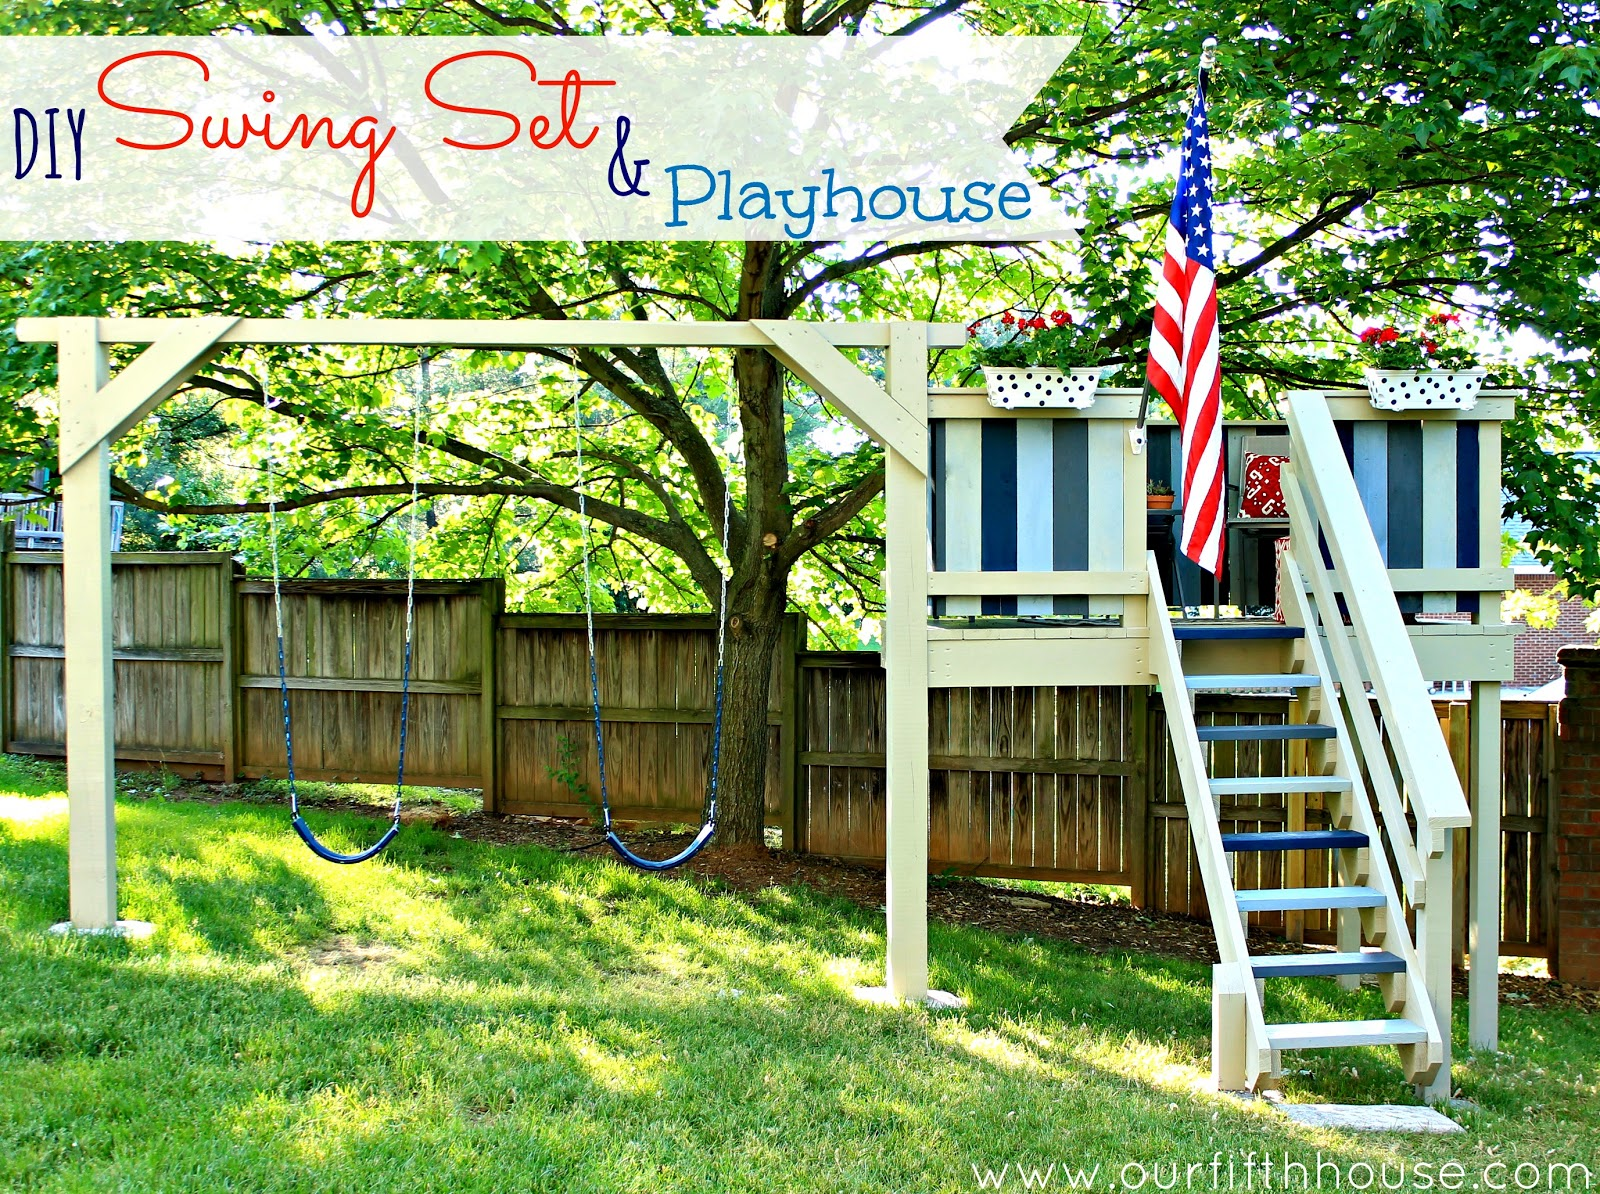 DIY Swing Set Playhouse Our Fifth House